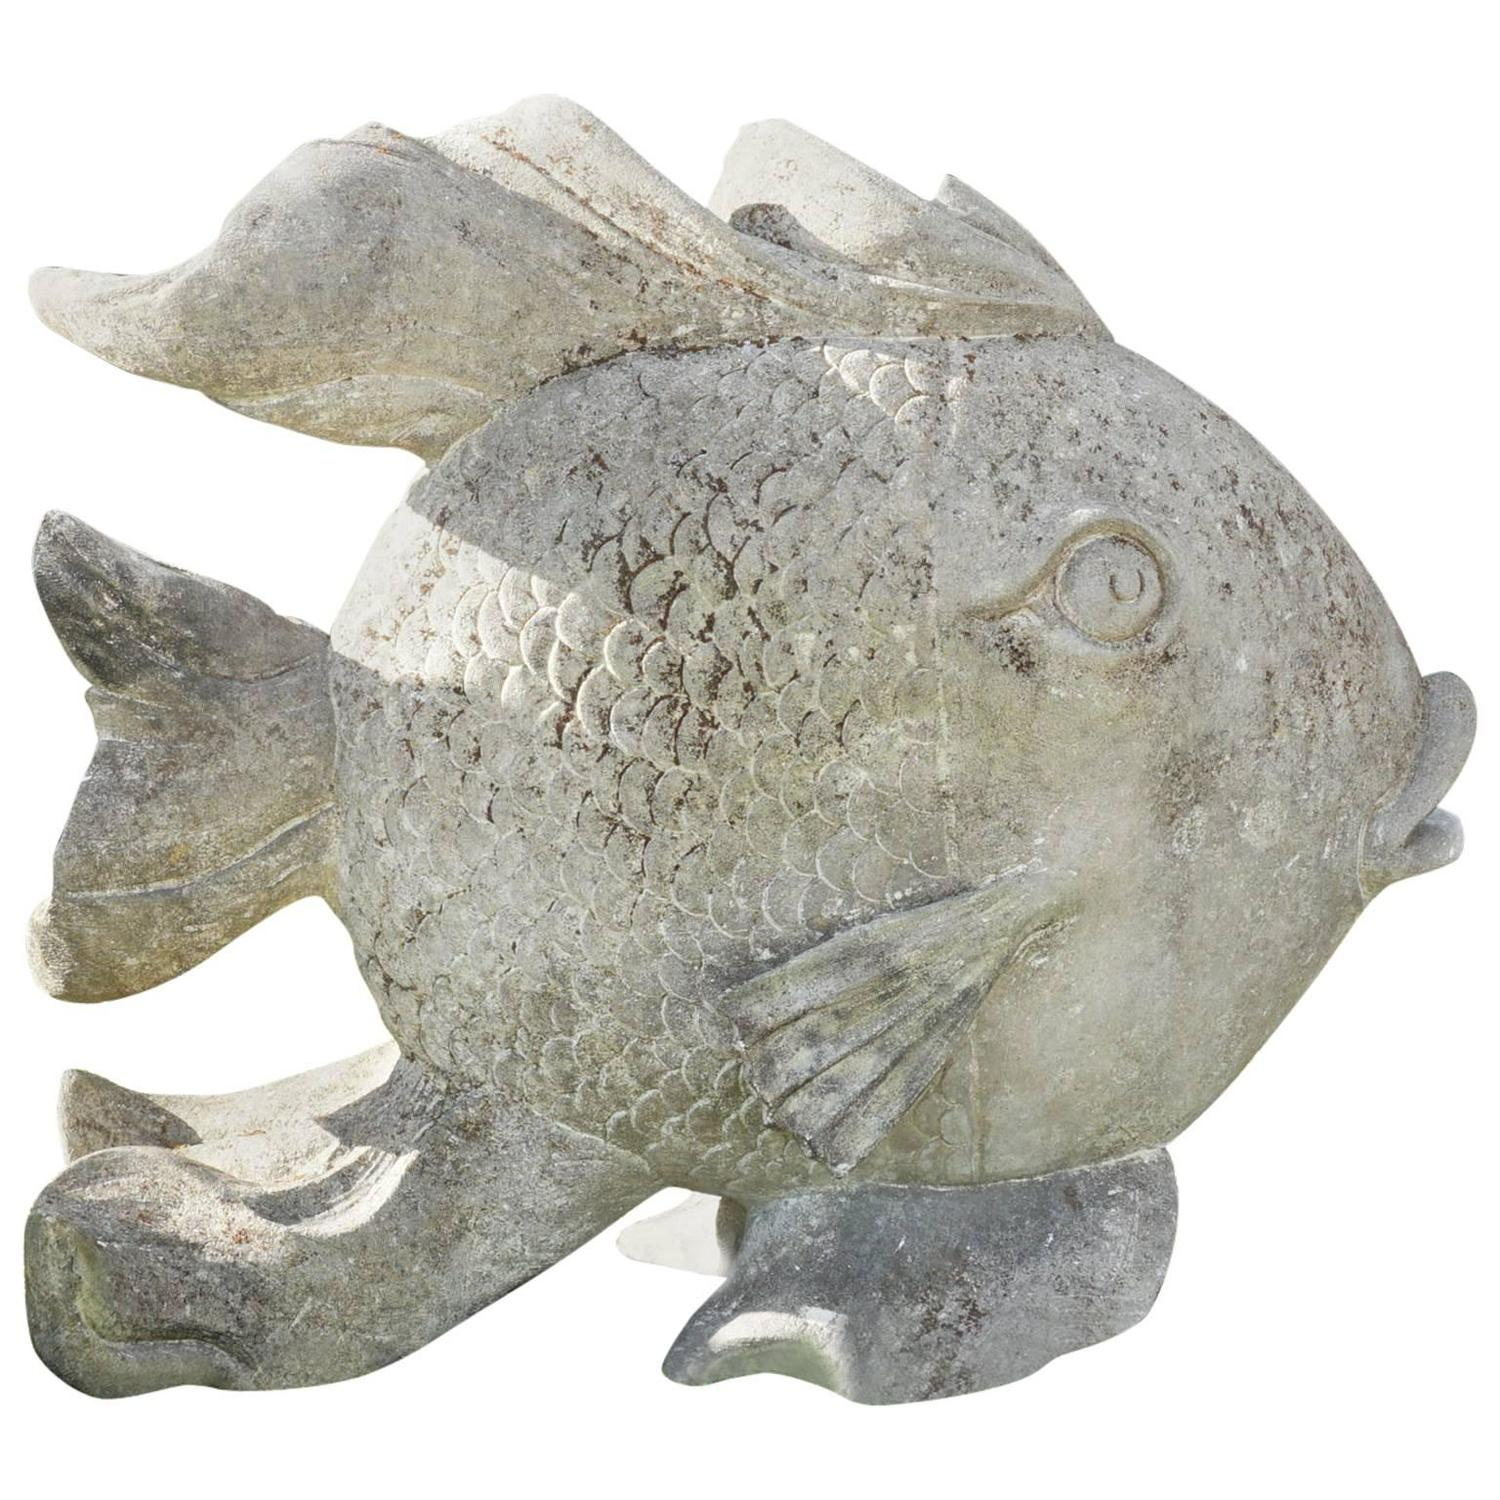 20th century large limestone fish garden statue at 1stdibs for Fish garden statue